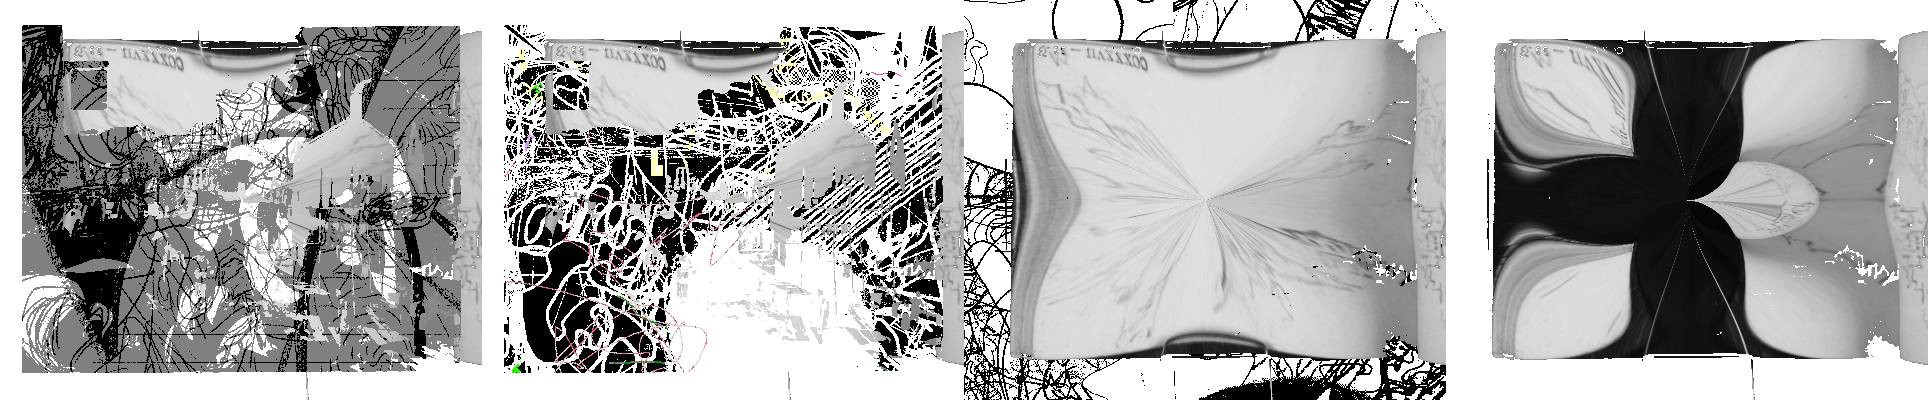 Italy,_supporting,_domestic,_shoe--49248-93959-14653-67892.jpg